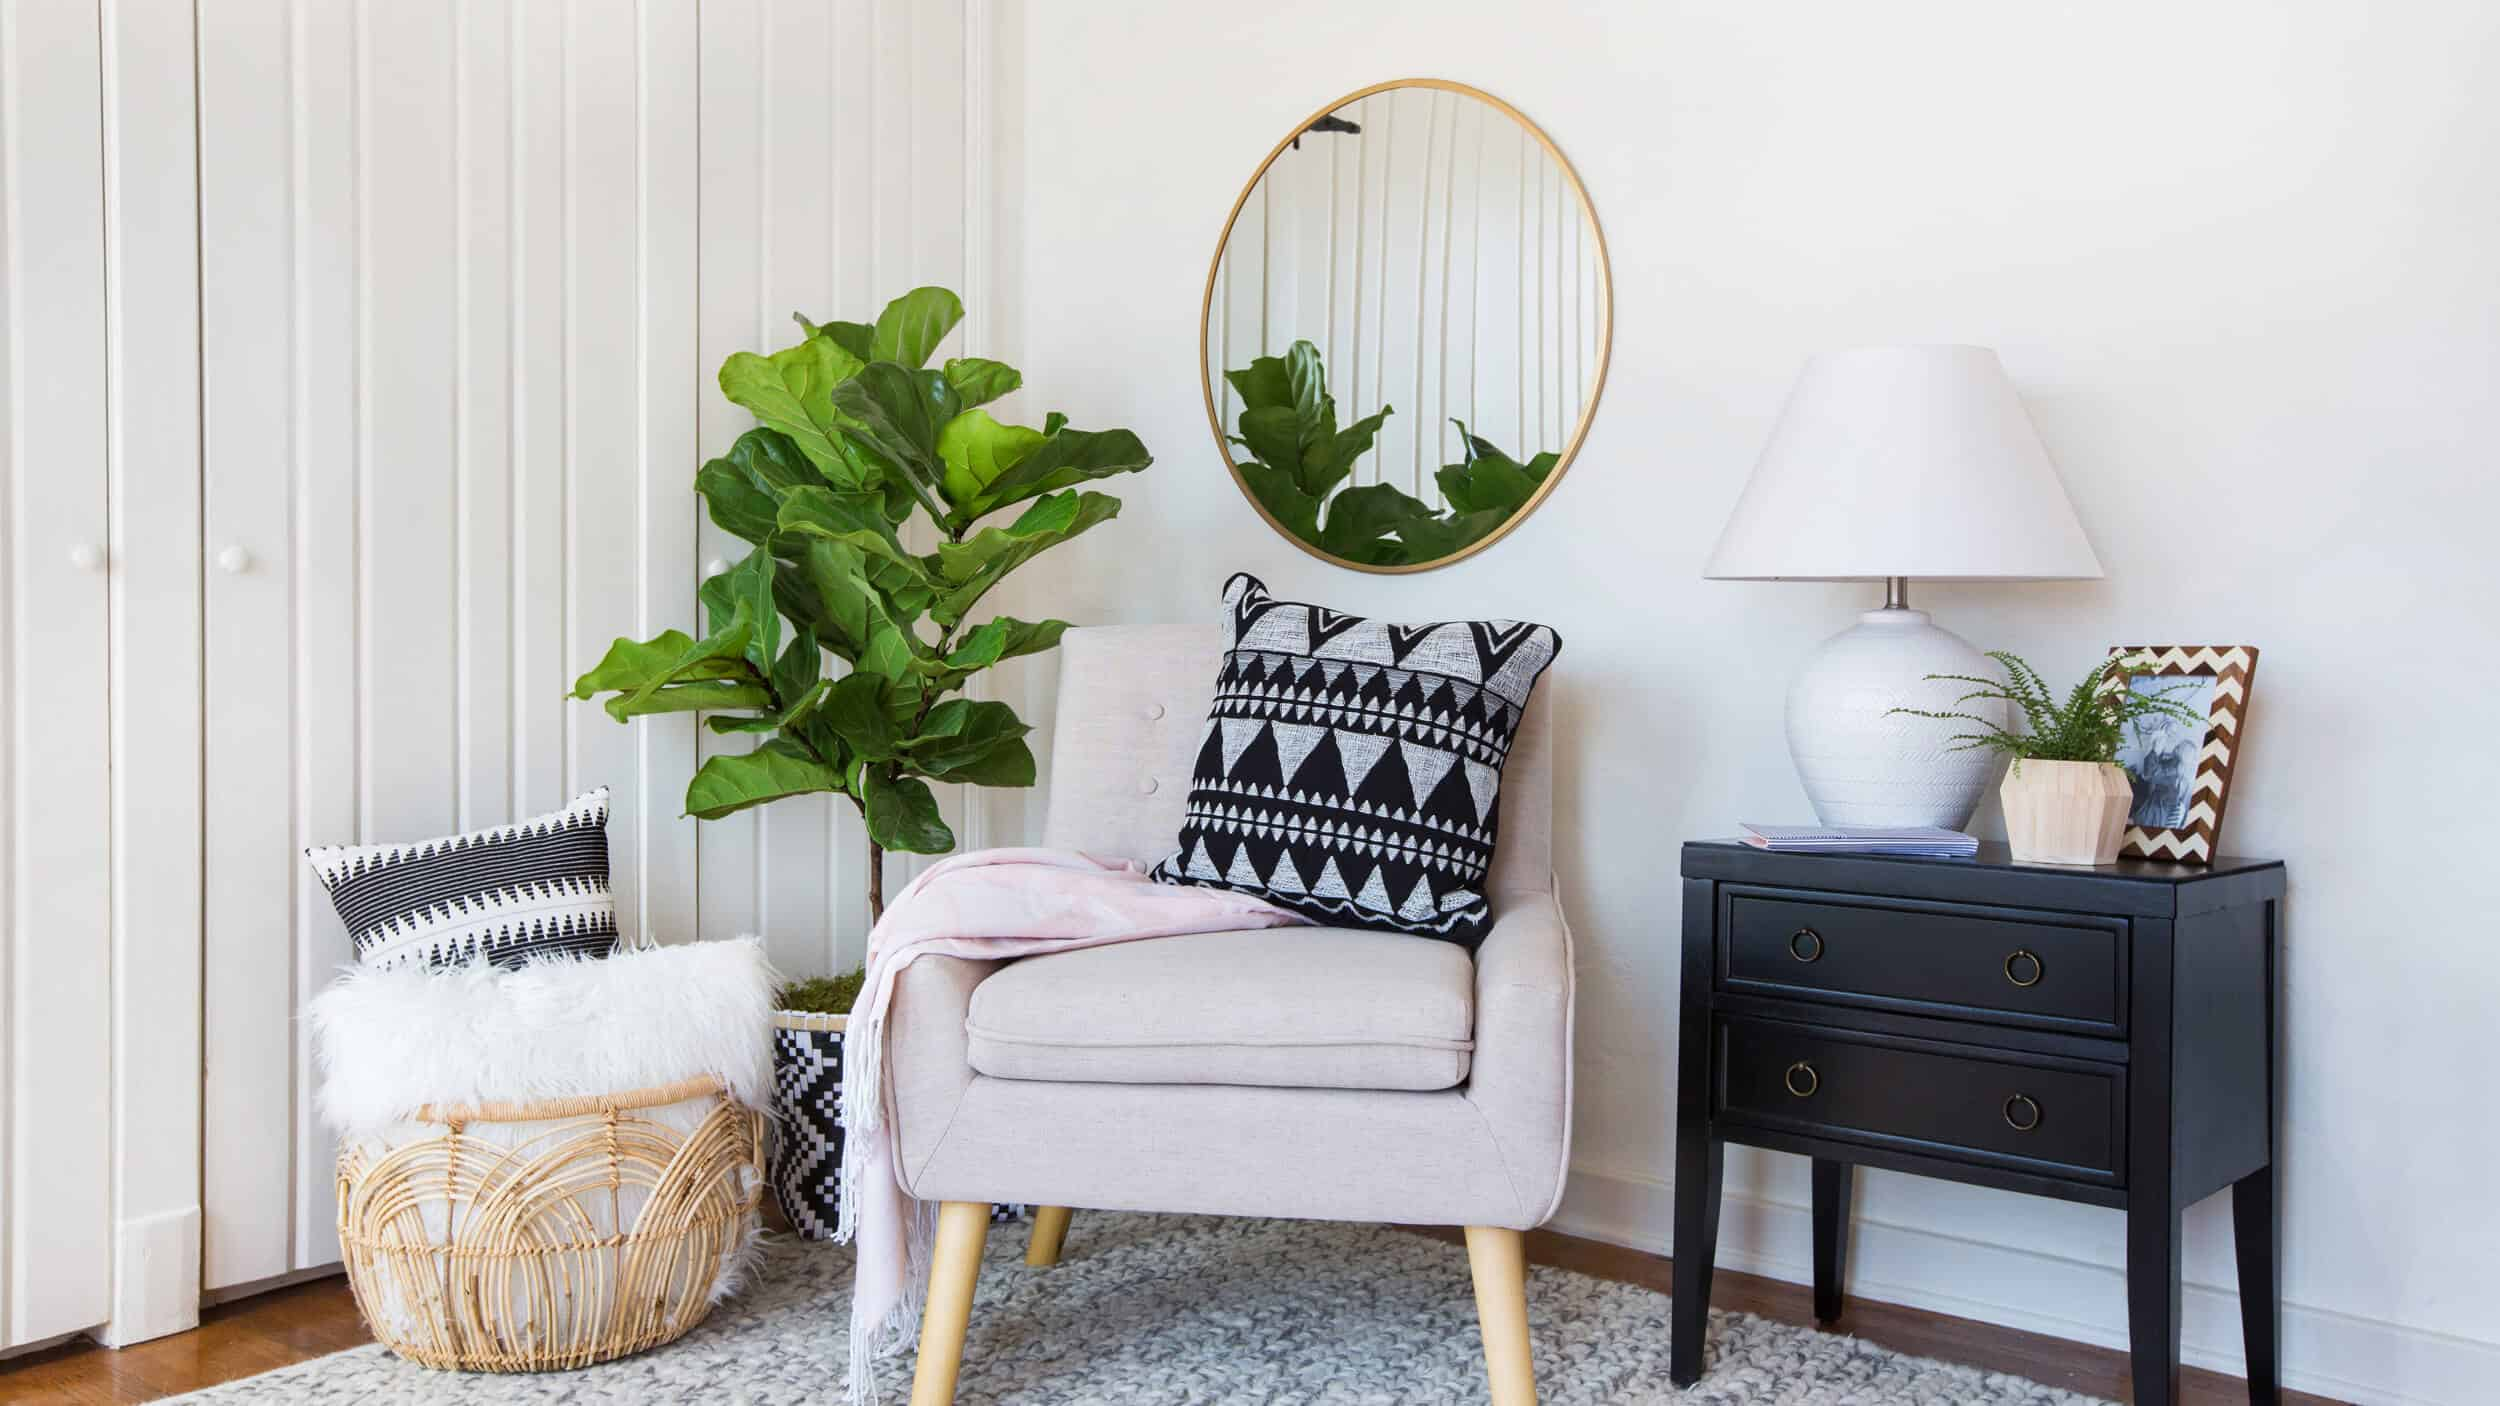 emily-henderson_target_find-your-style_vignette_scandinavian_relaxed_natural_airy_modern_3